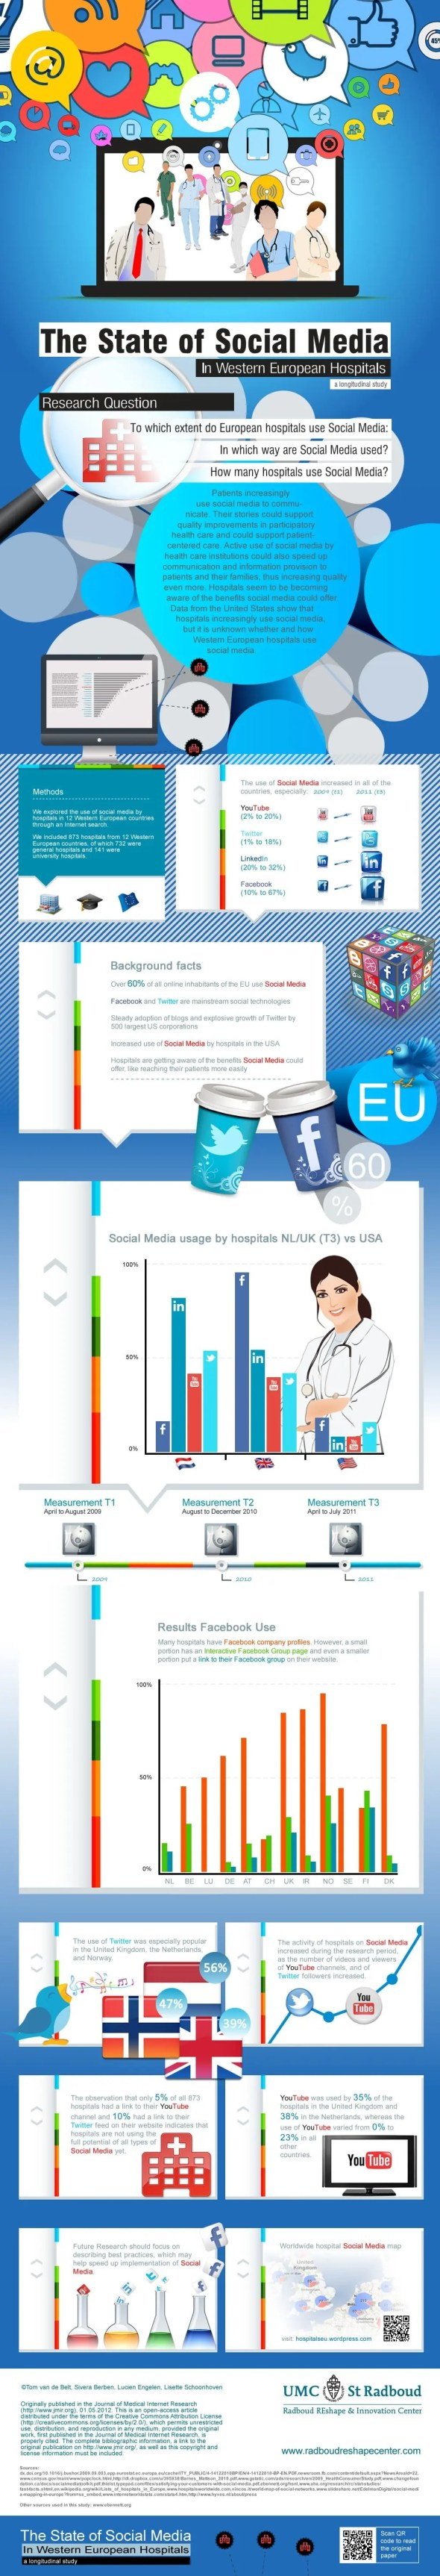 Infographic: Hospitals in Europe Embrace Social Media